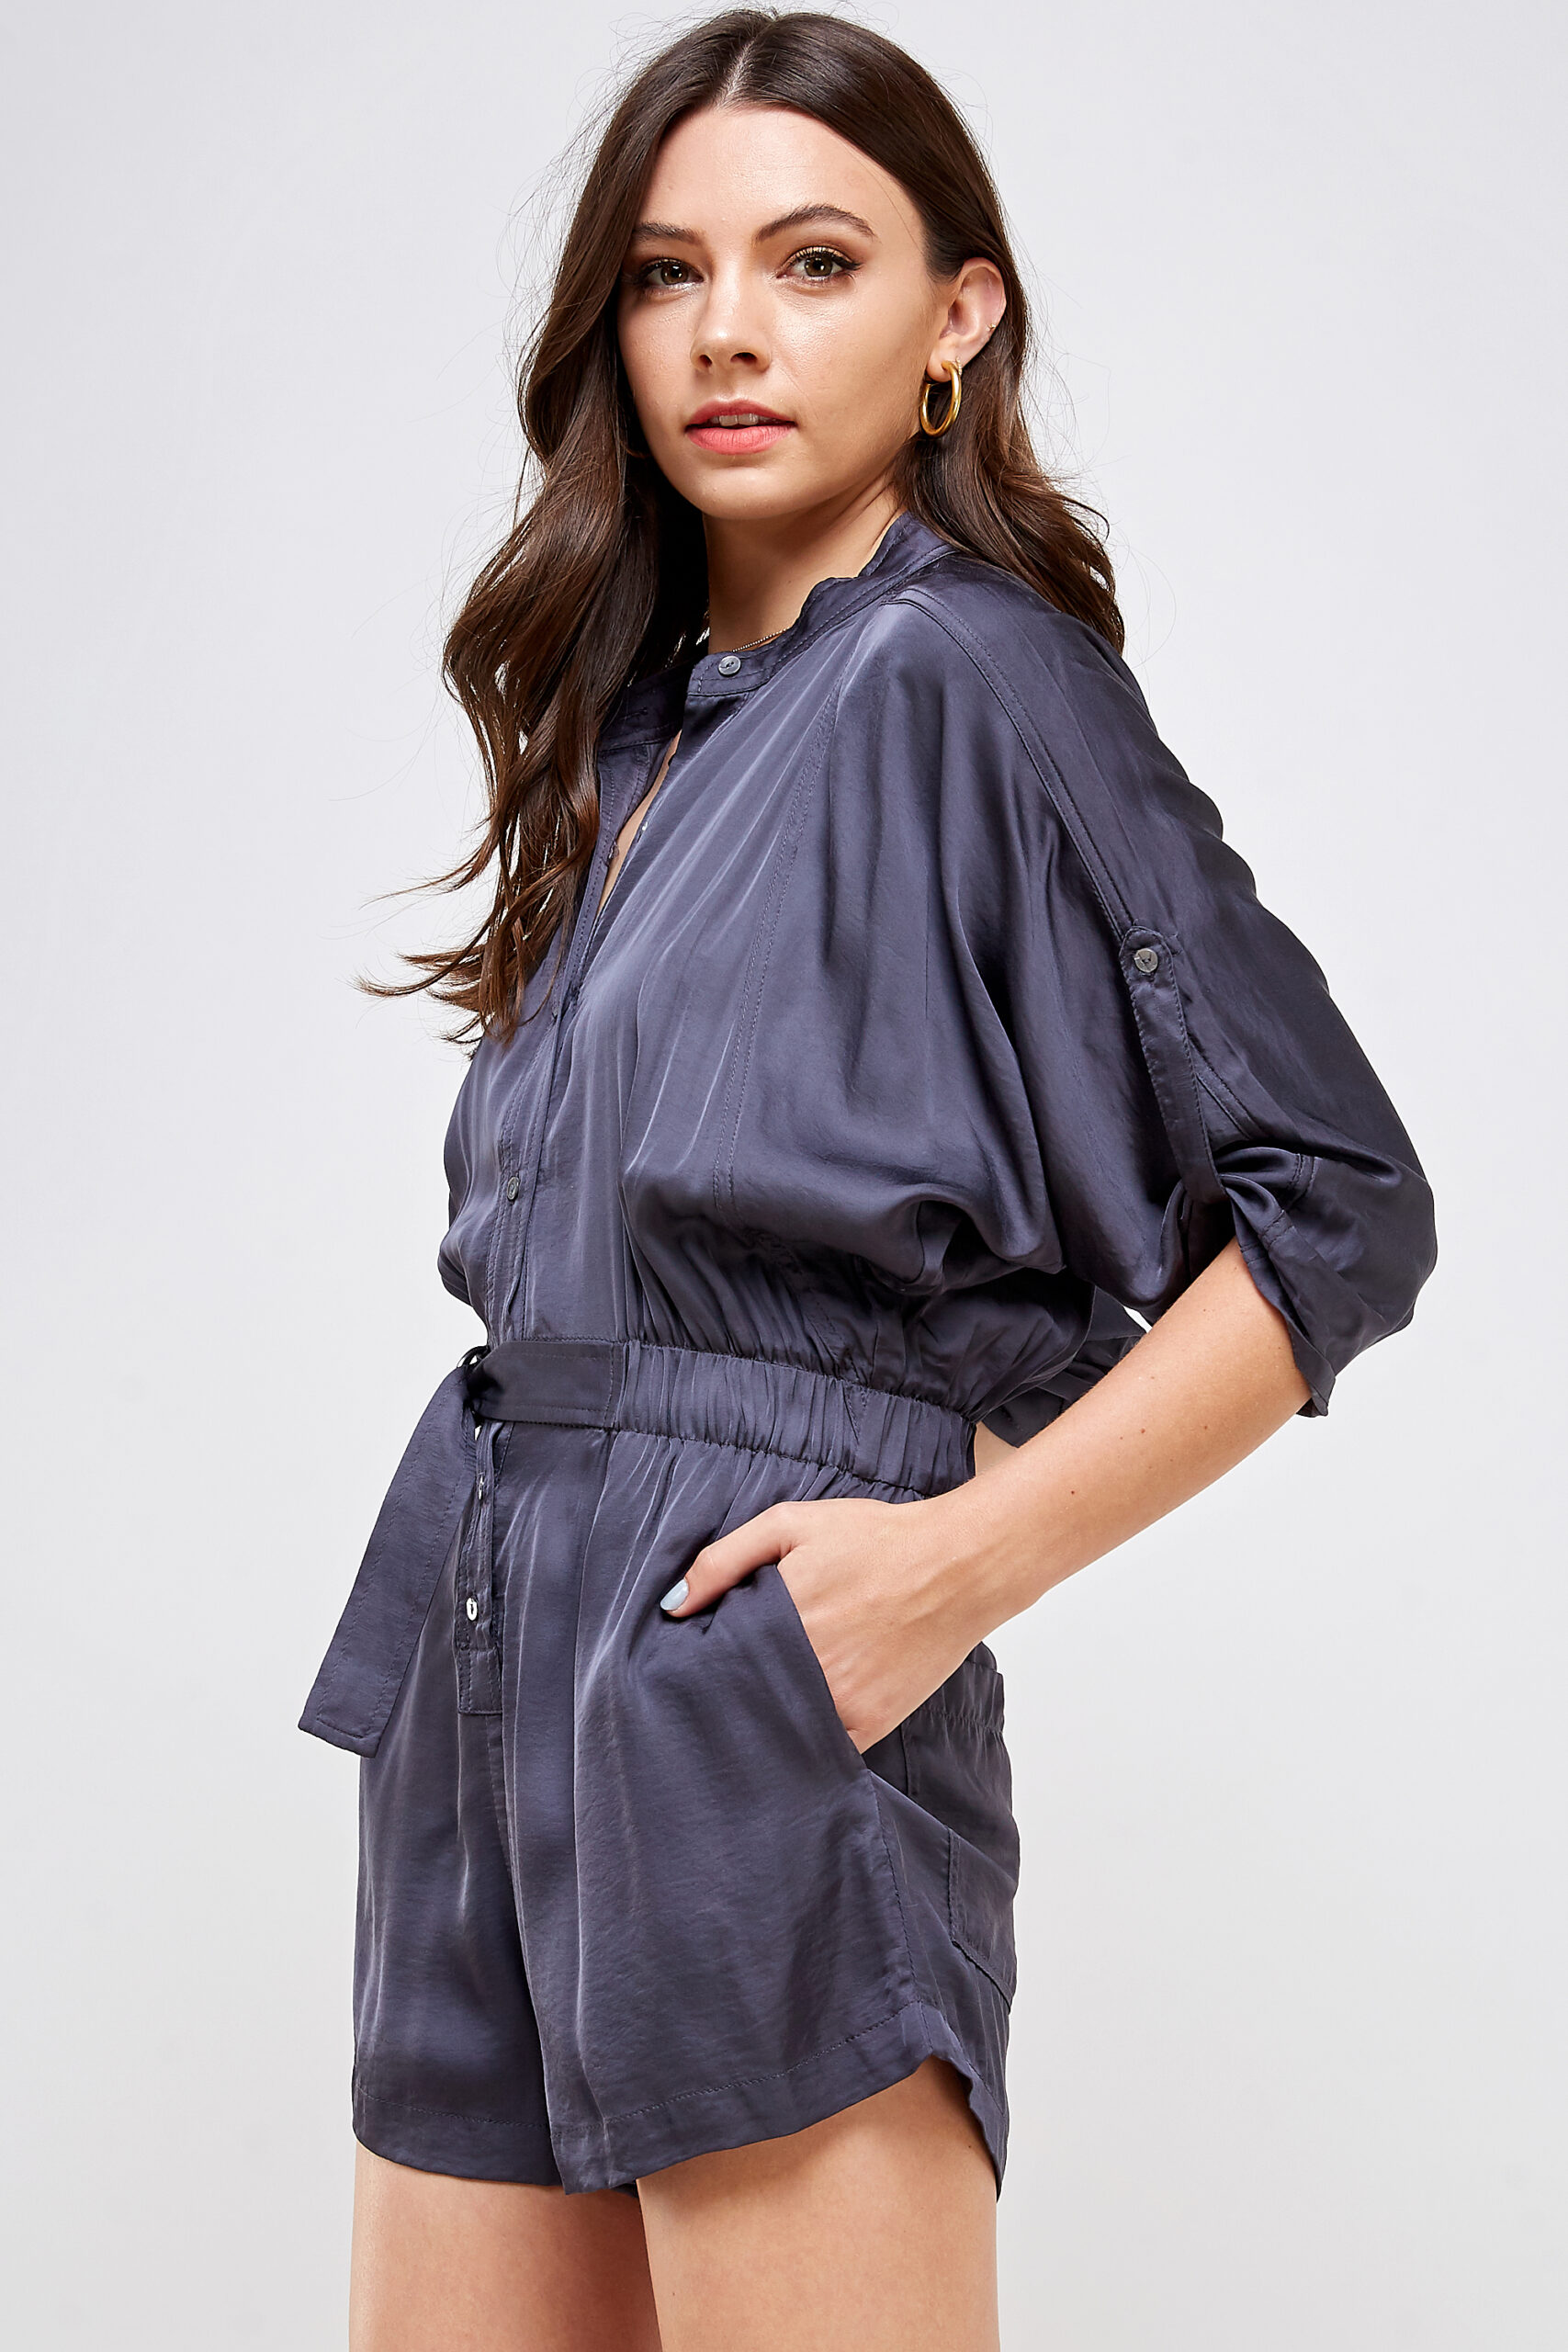 100% Polyester Belted Romper Roll Up Sleeves Button Up Front Side View Medium